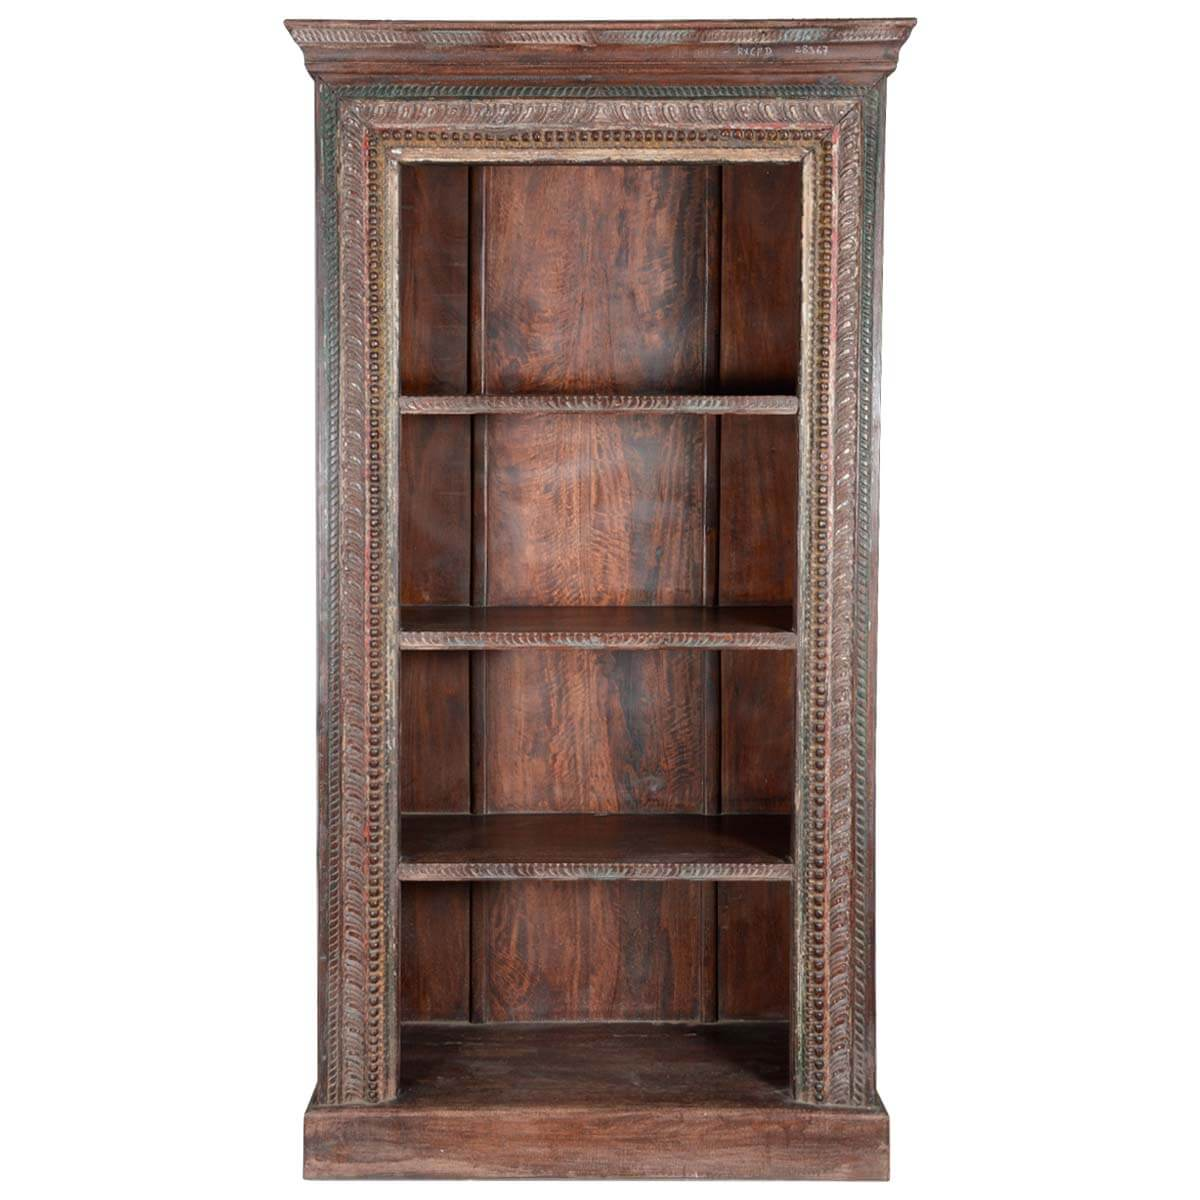 Old Wood Shelves Bookcase 1200 x 1200